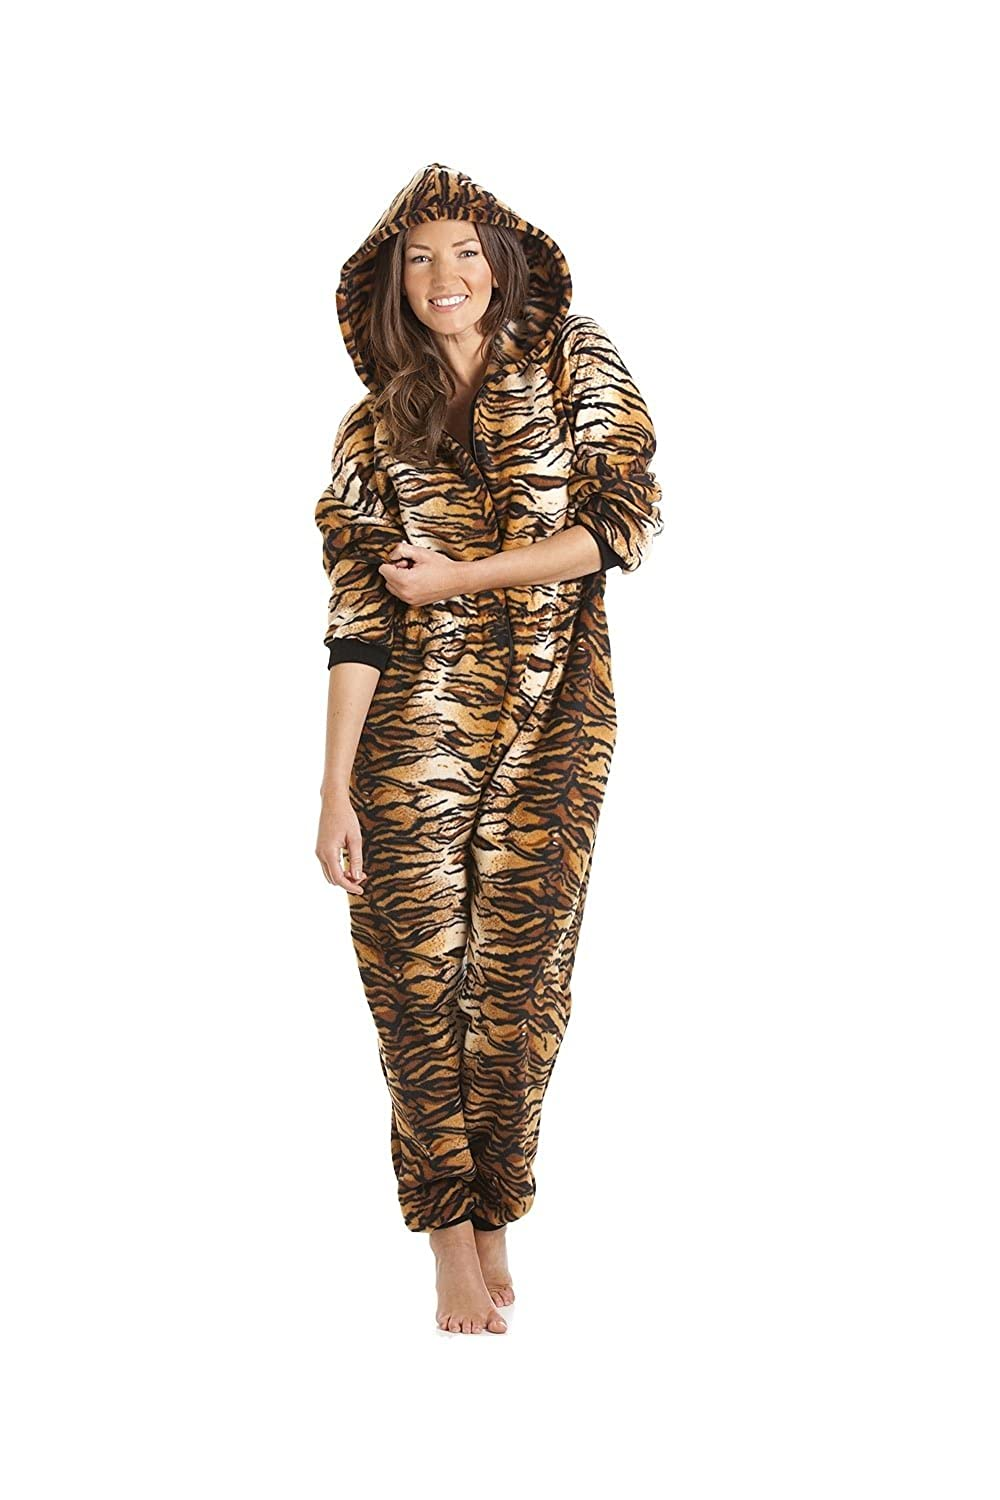 Camille Womens Ladies Luxury Gold And Brown Tiger Print Hooded All In One Onesie